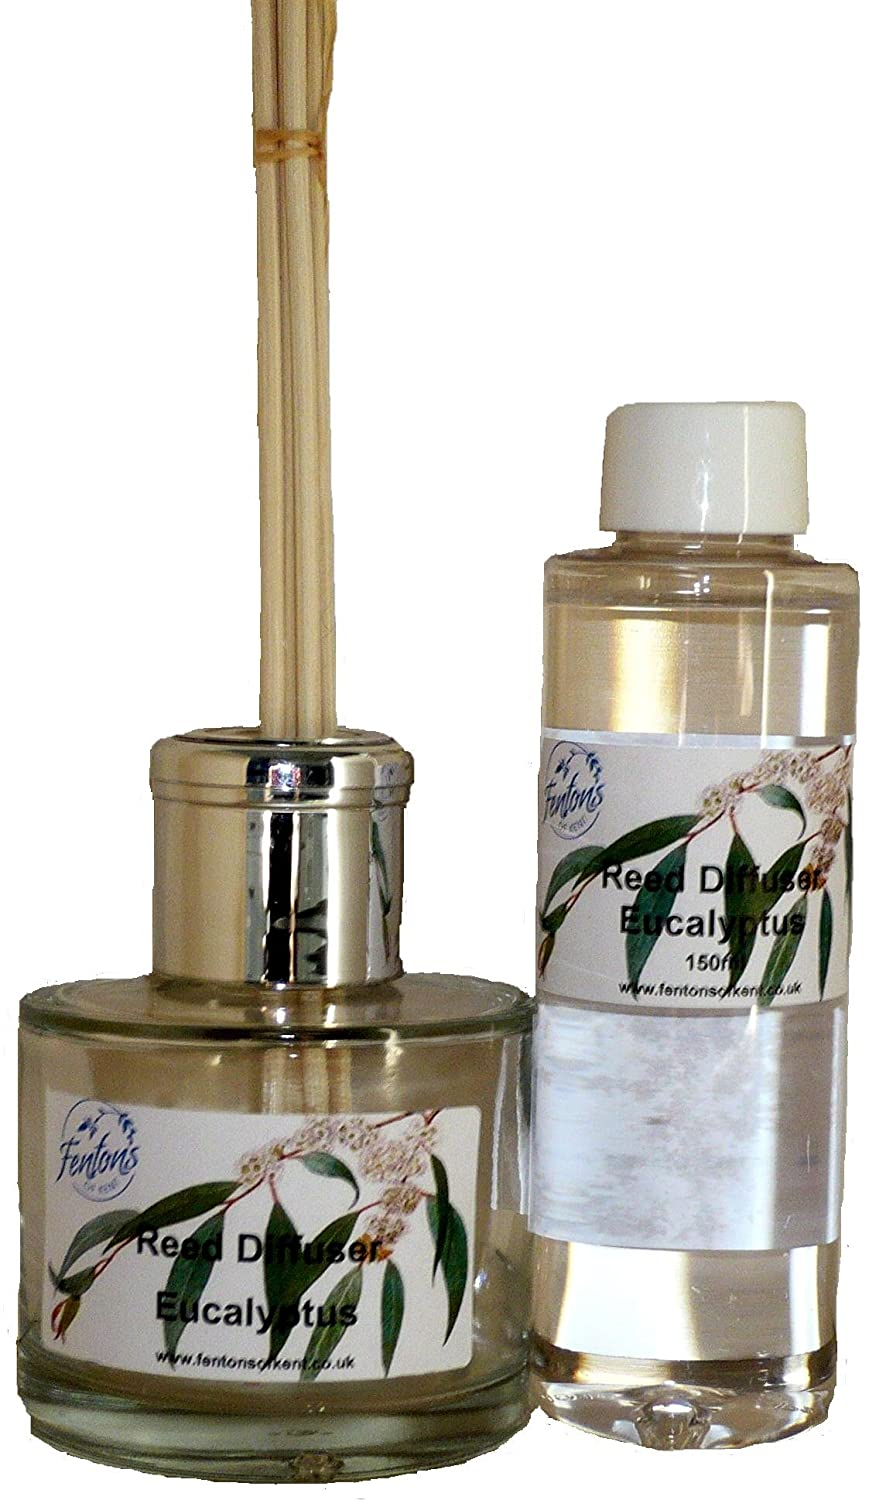 Fentons of Kent Eucalyptus Reed Diffuser Set 150ml made with essential oils and is long lasting